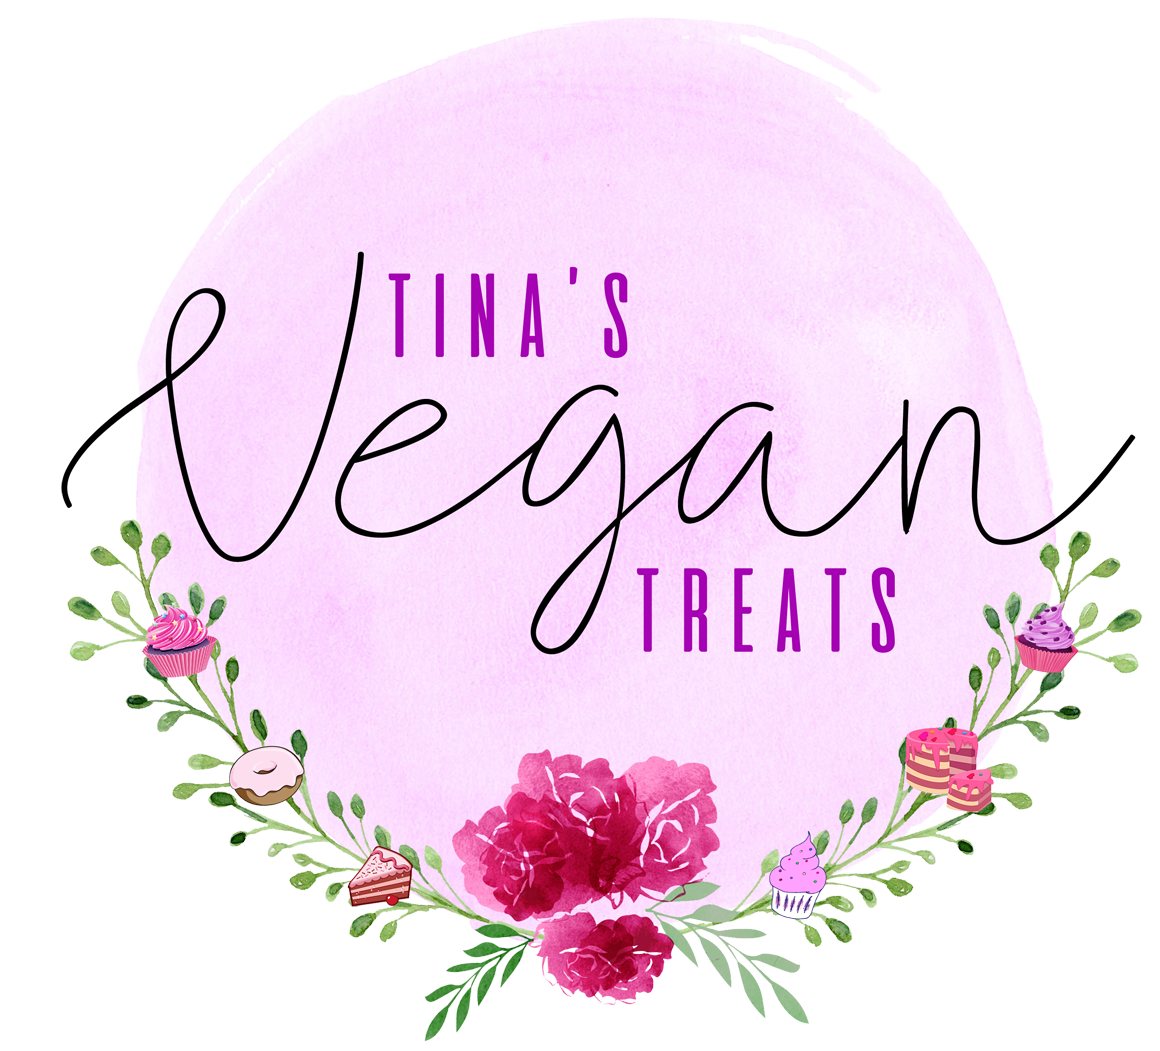 Tina's Vegan Treats